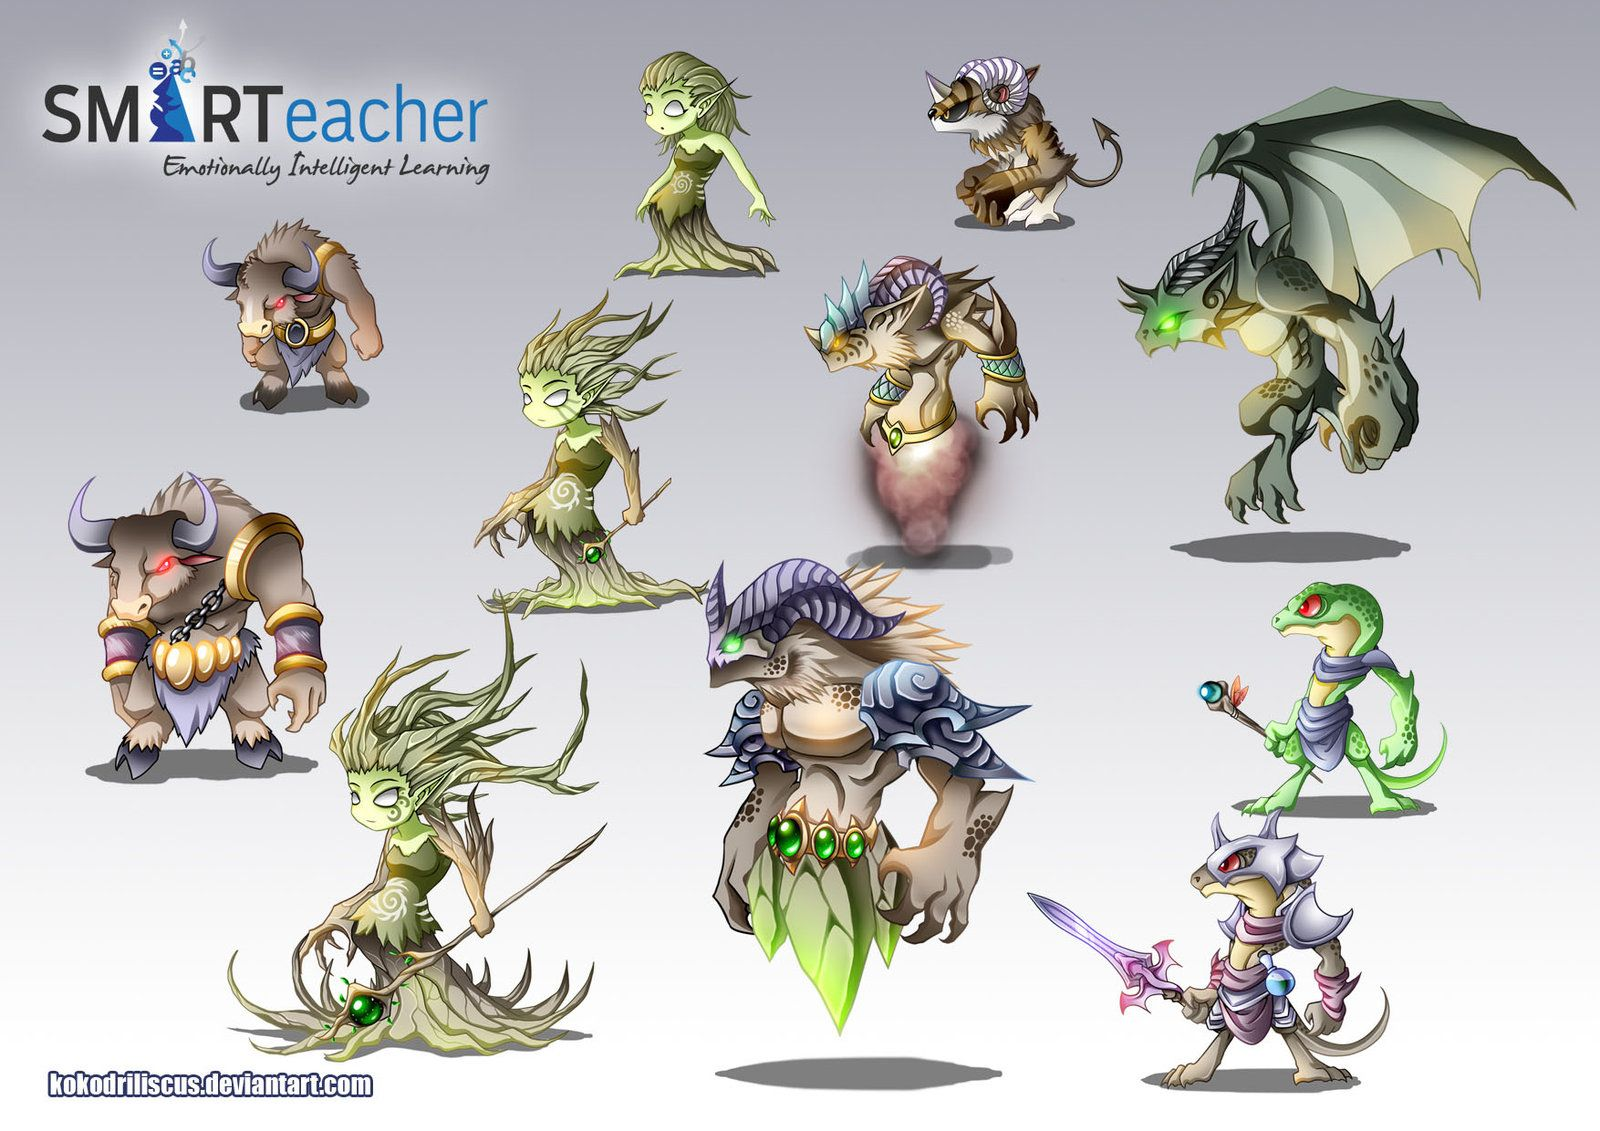 Prodigy Earth Monsters By Kokodriliscus On Deviantart Monster Prodigy Prodigy Math Game